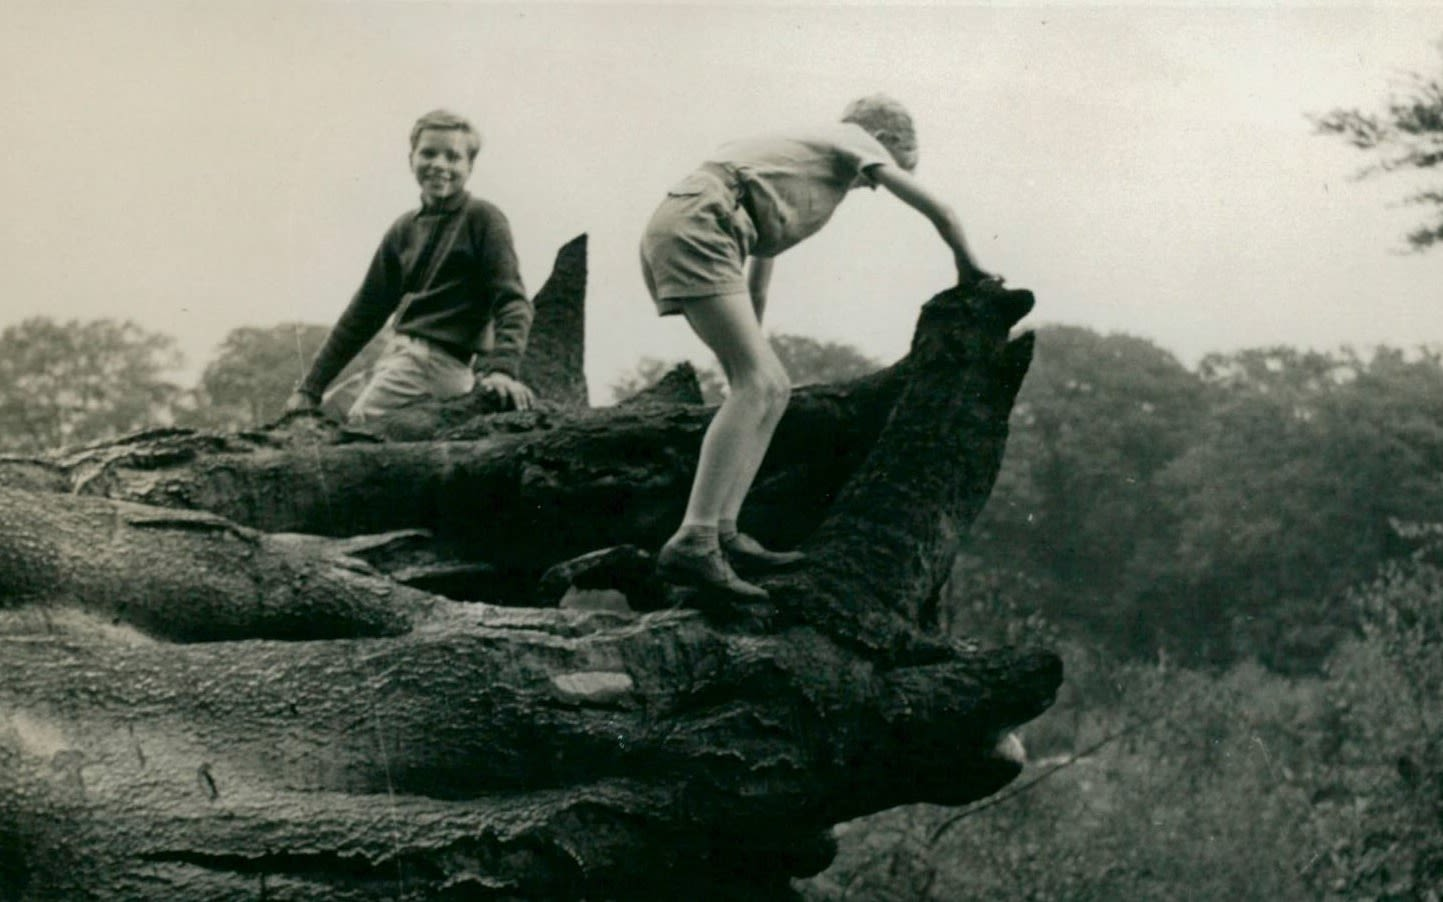 Black and white image of Richard Branson as a boy climbing a fallen tree